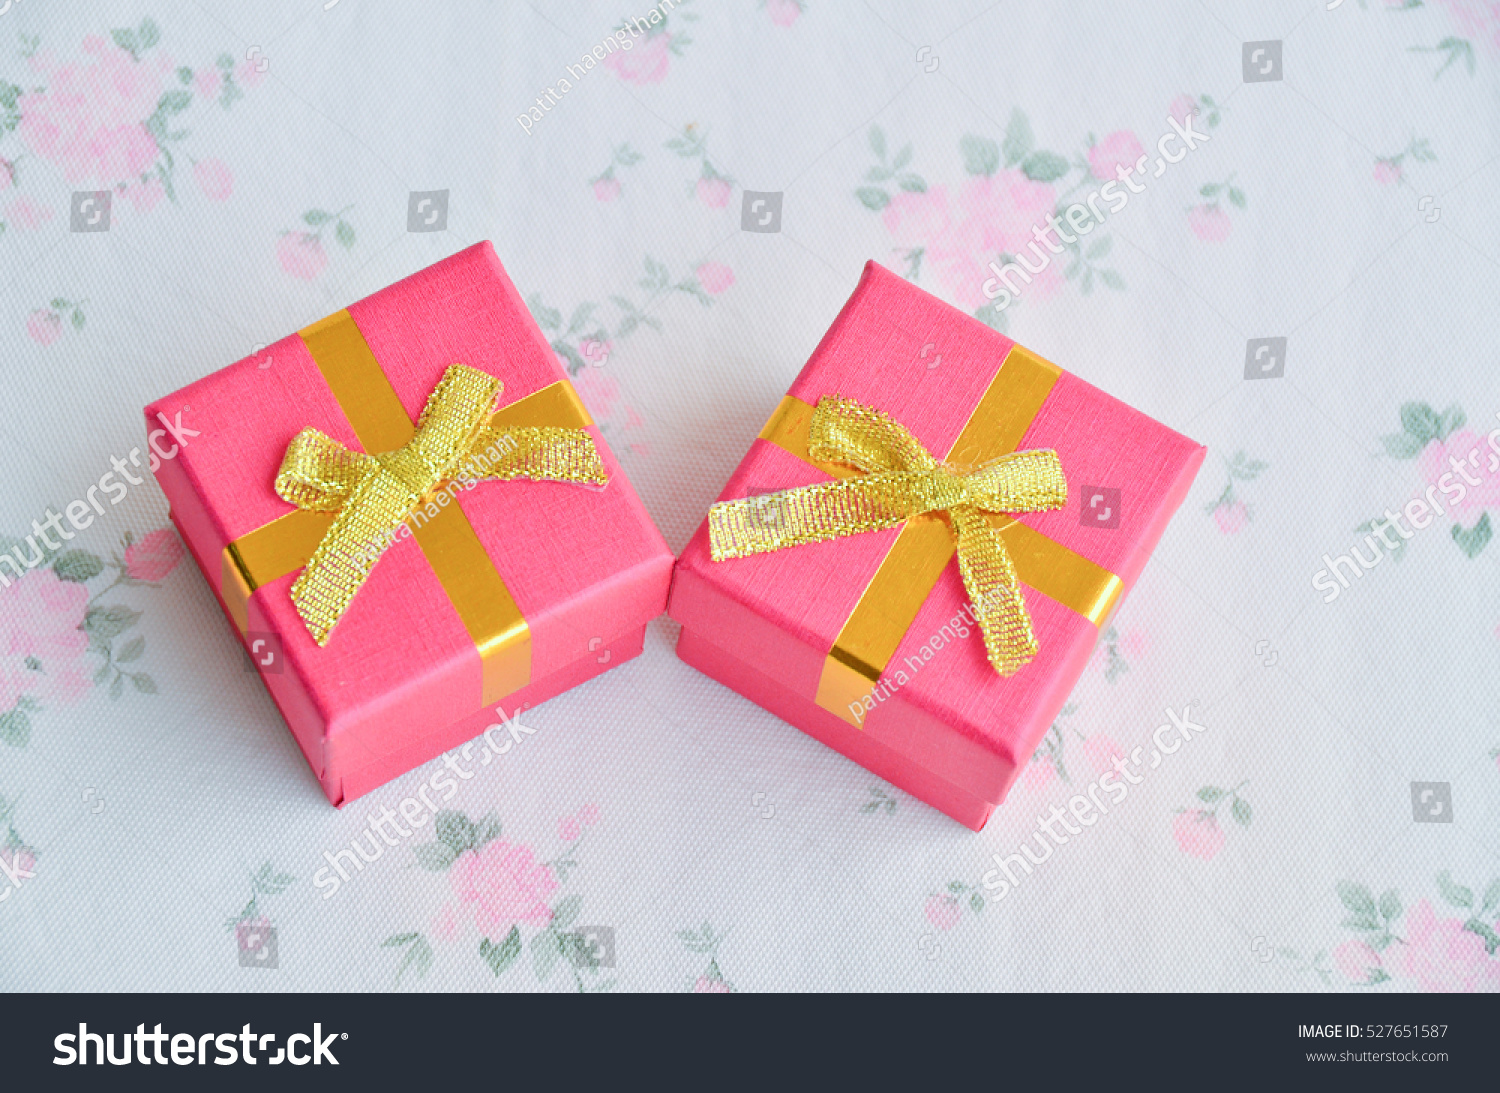 Jewelry Box White Gold Silver Rings Stock Photo 527651587 - Shutterstock